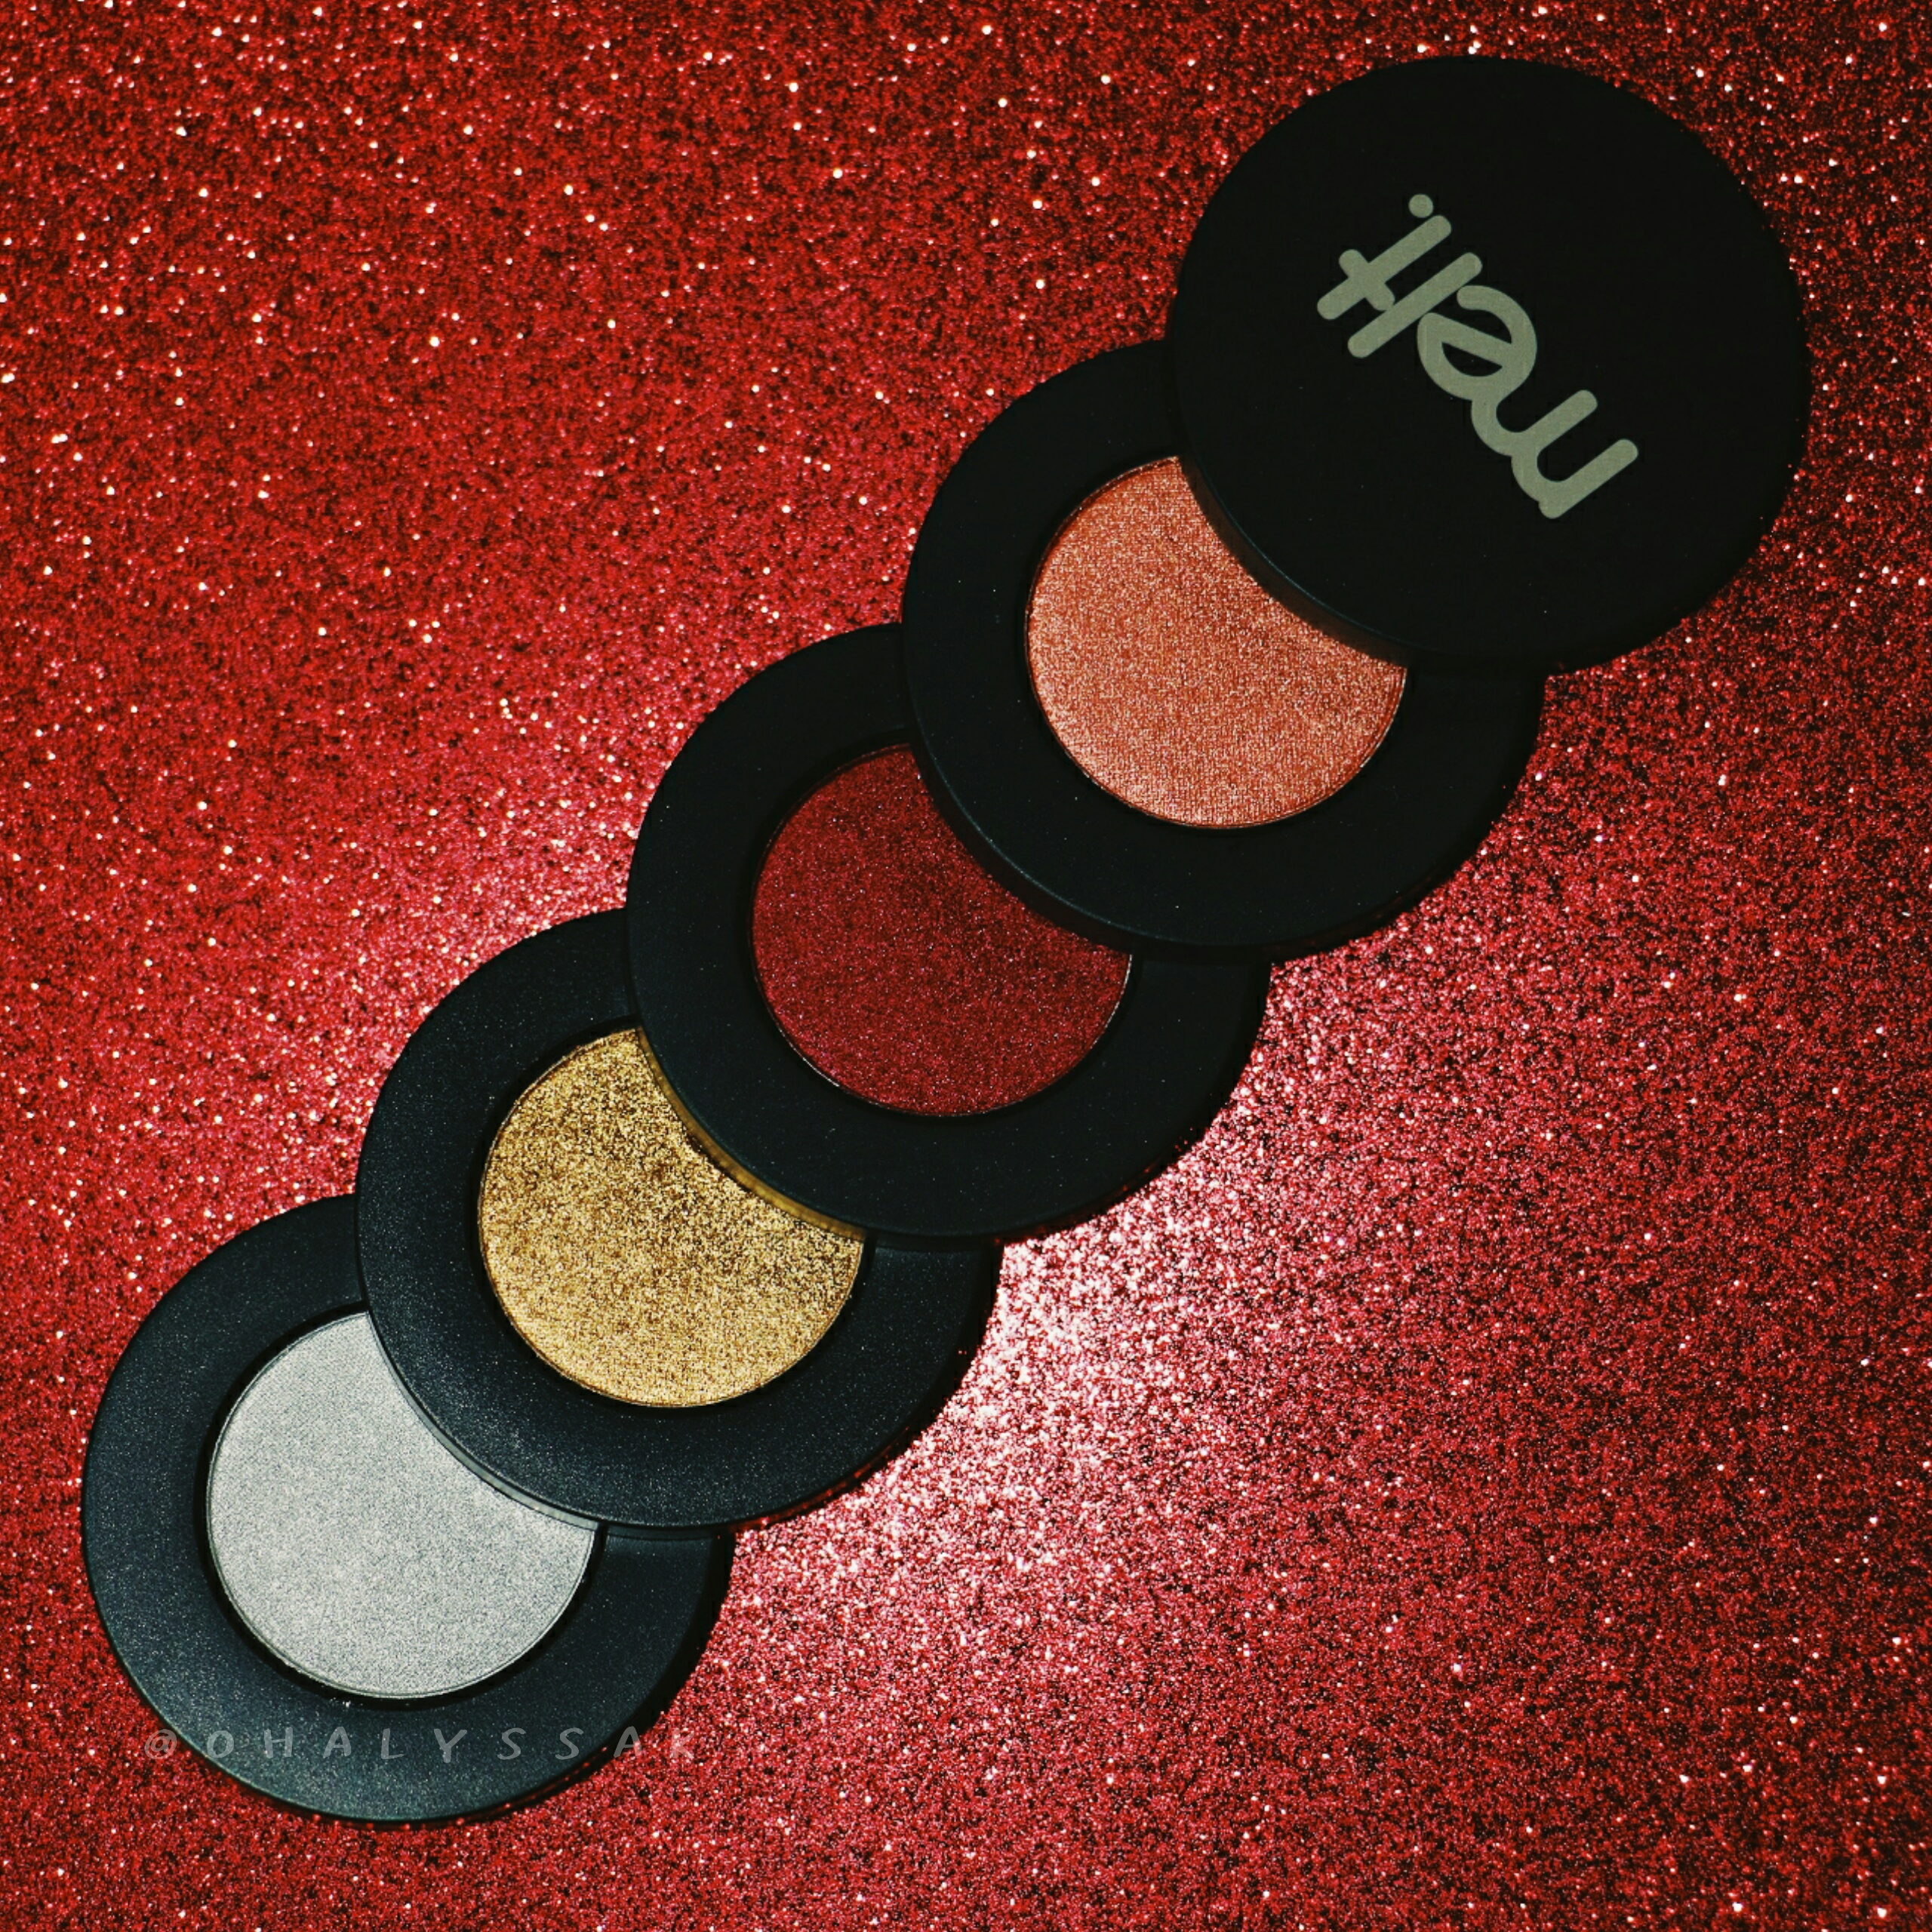 MOTD Melt Cosmetics Melt Hot Box Collection Melt Haze Melt Haze Stack Melt Baked 420 Stoner Hot Boxed Stoner Chick Vegan Makeup Cruelty-Free Makeup Fall Makeup 818 Lora Arellano Dana Bomar Boss Babes Boss Bitch Makeup Sacramento MUA Makeup Artist